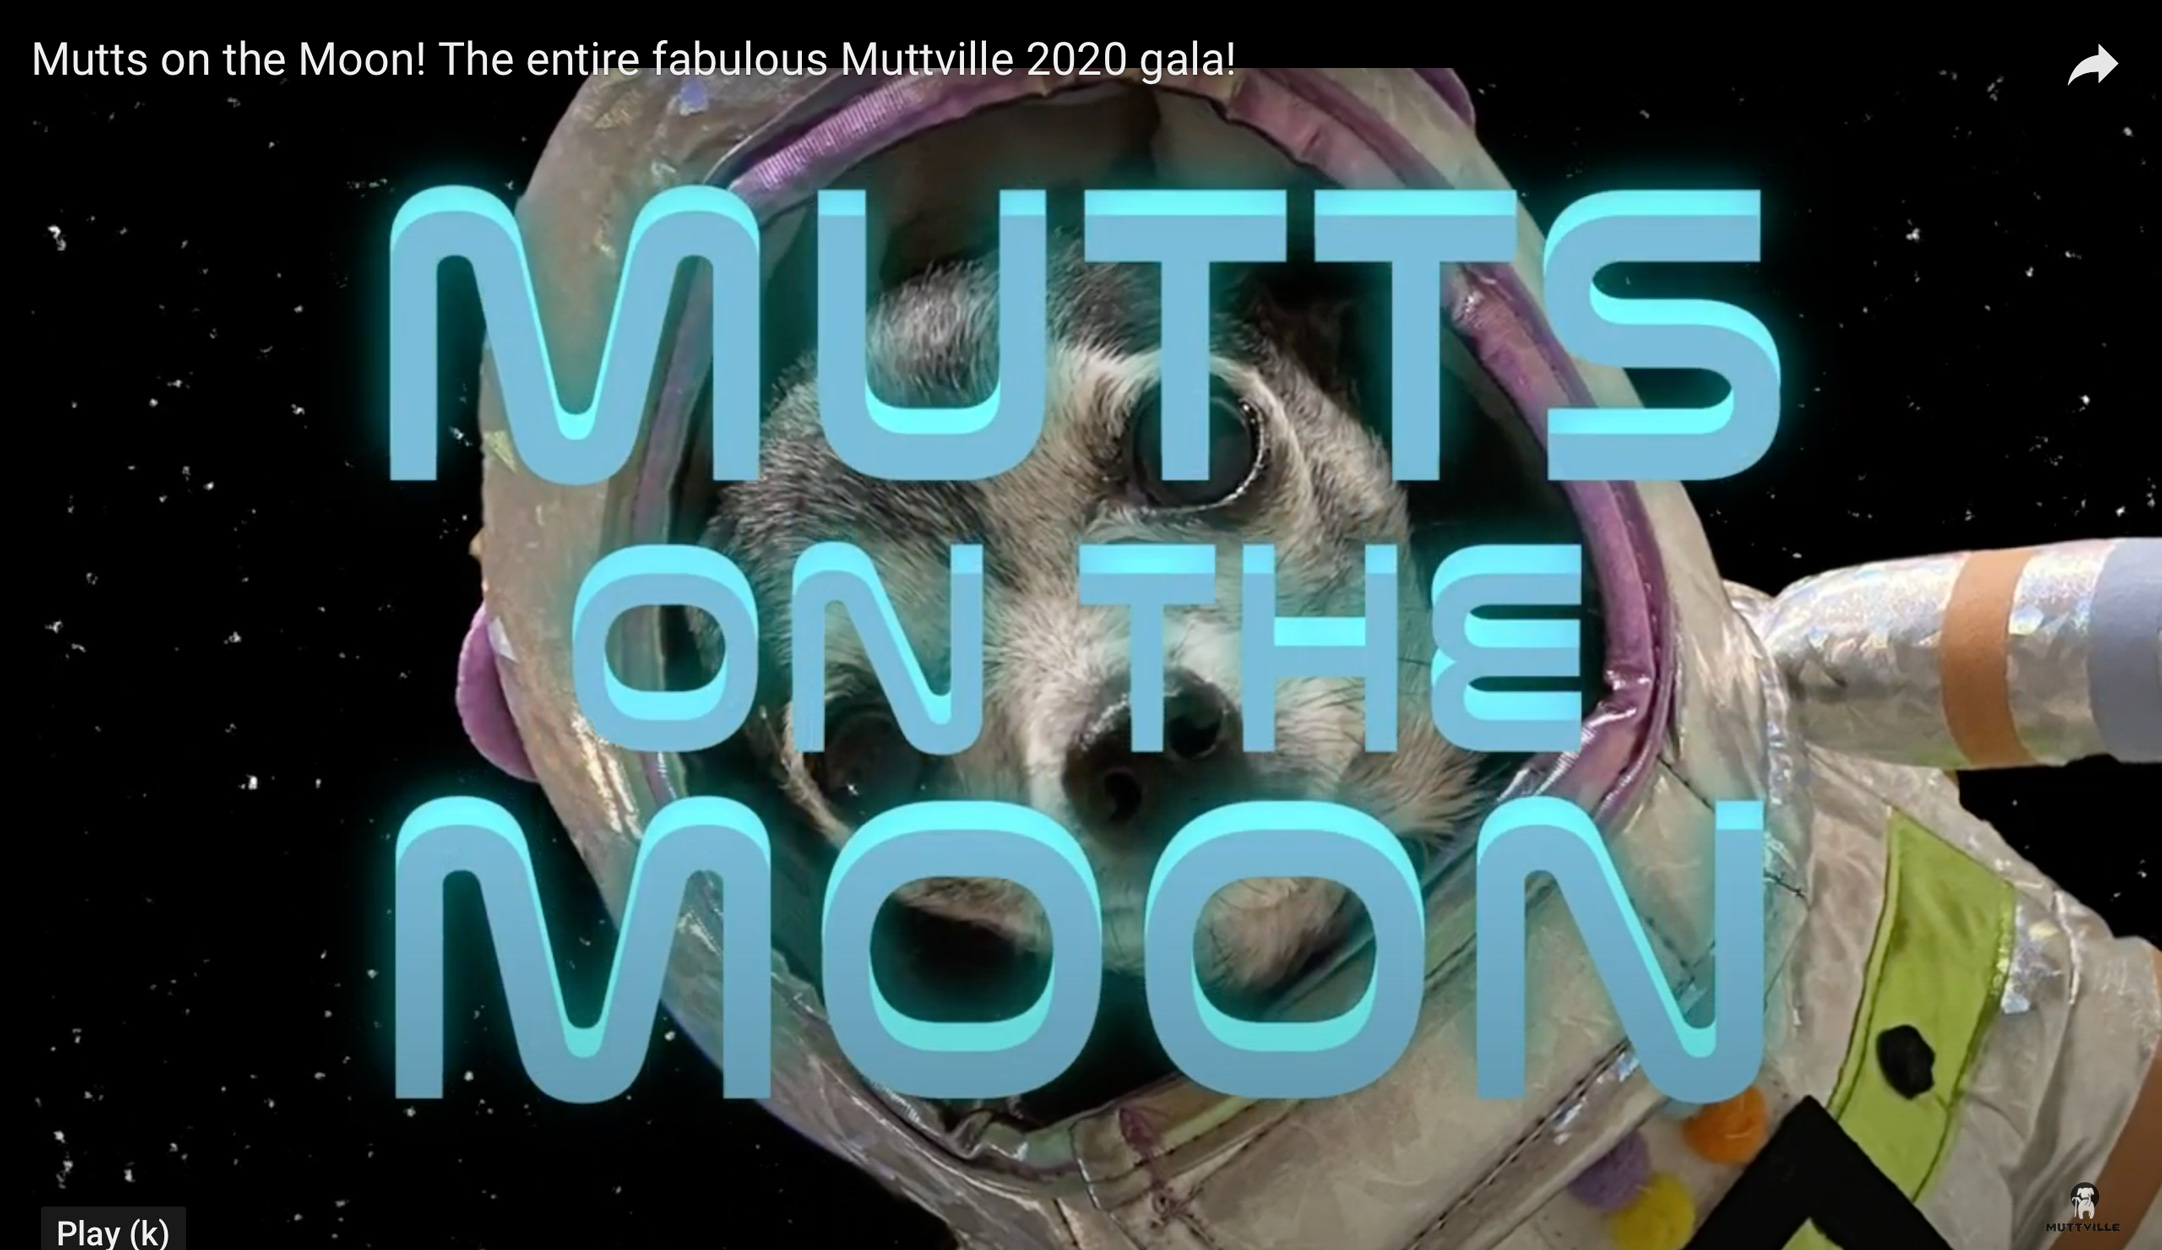 Mutts on the Moon